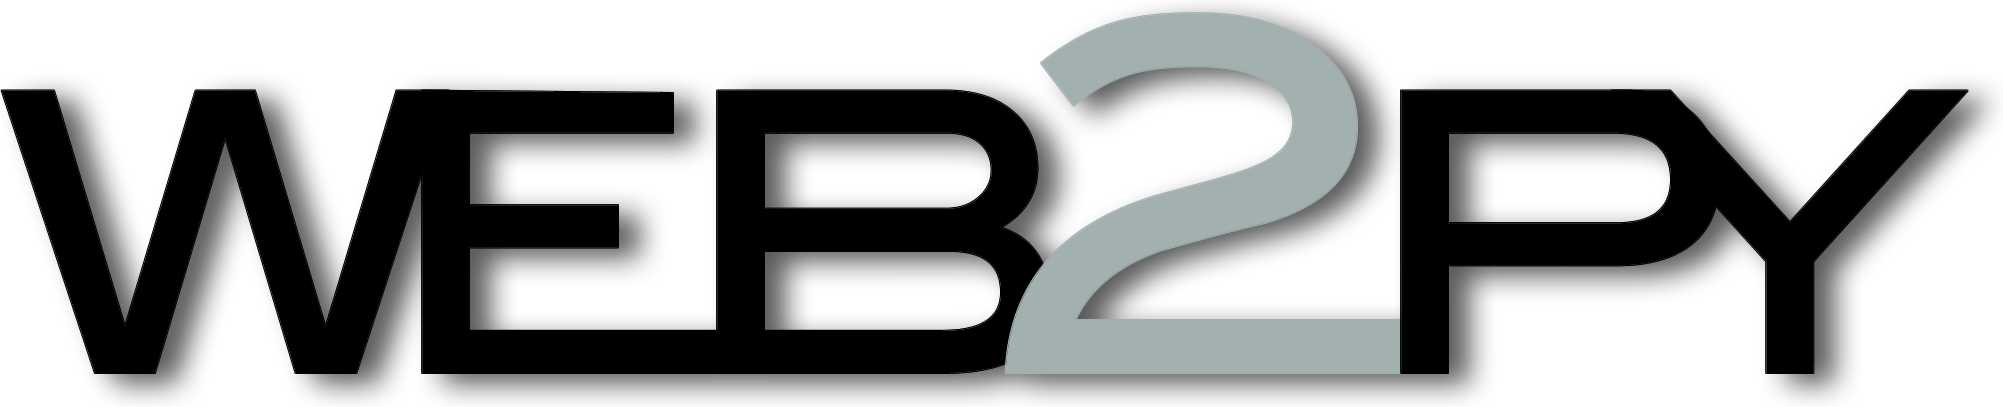 The web2py logo